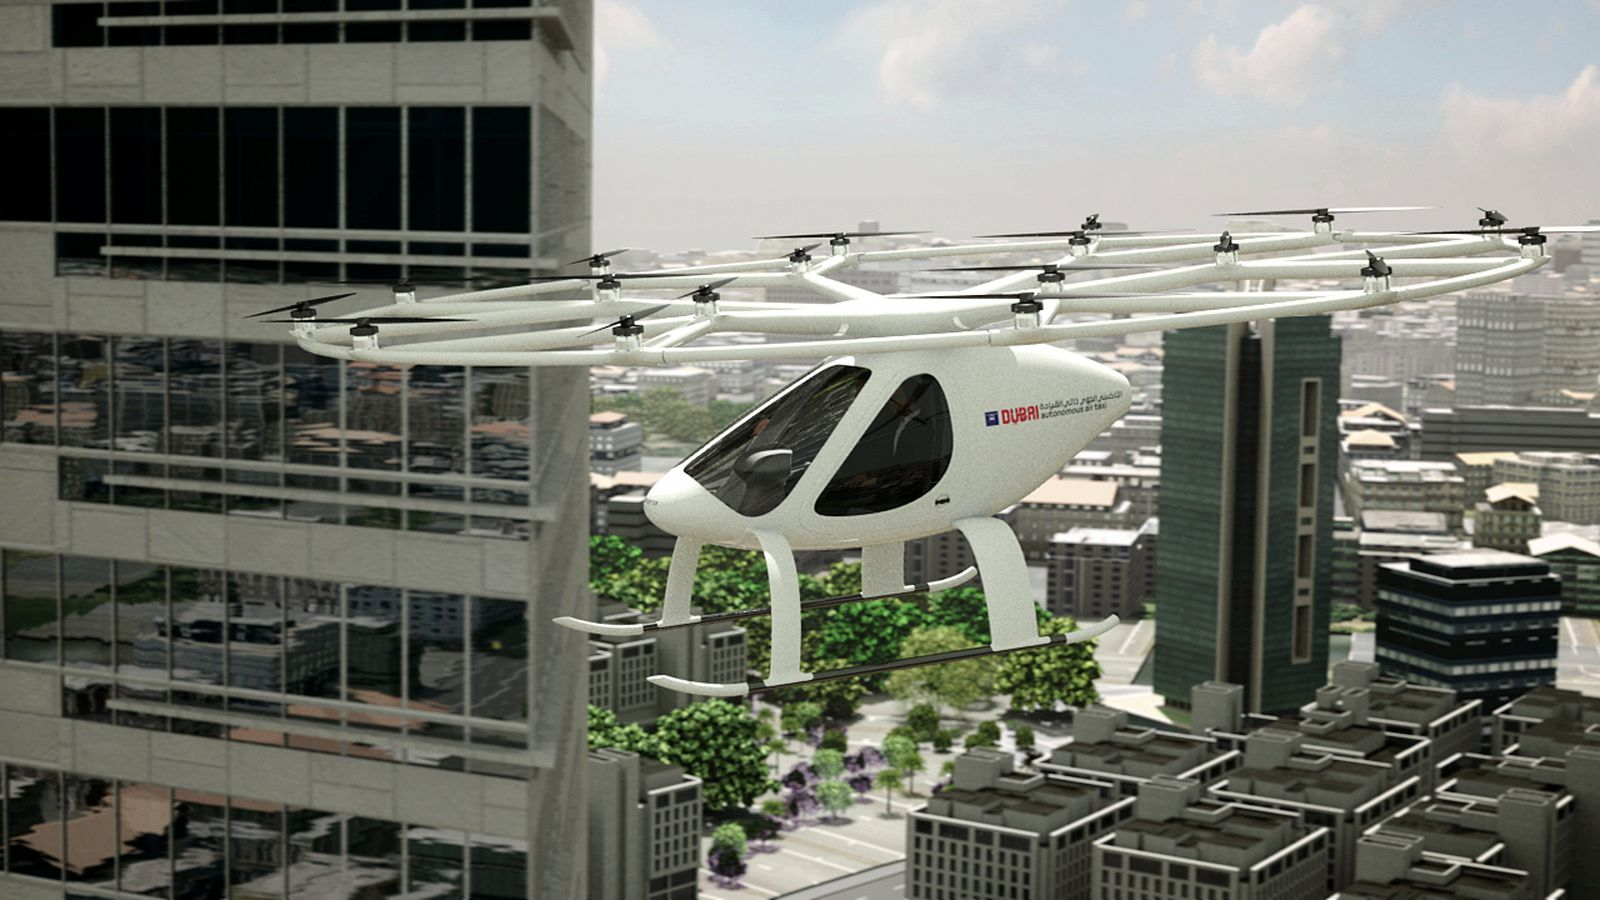 Forget gridlocks – Dubai to get autonomous flying taxis from the end of this year